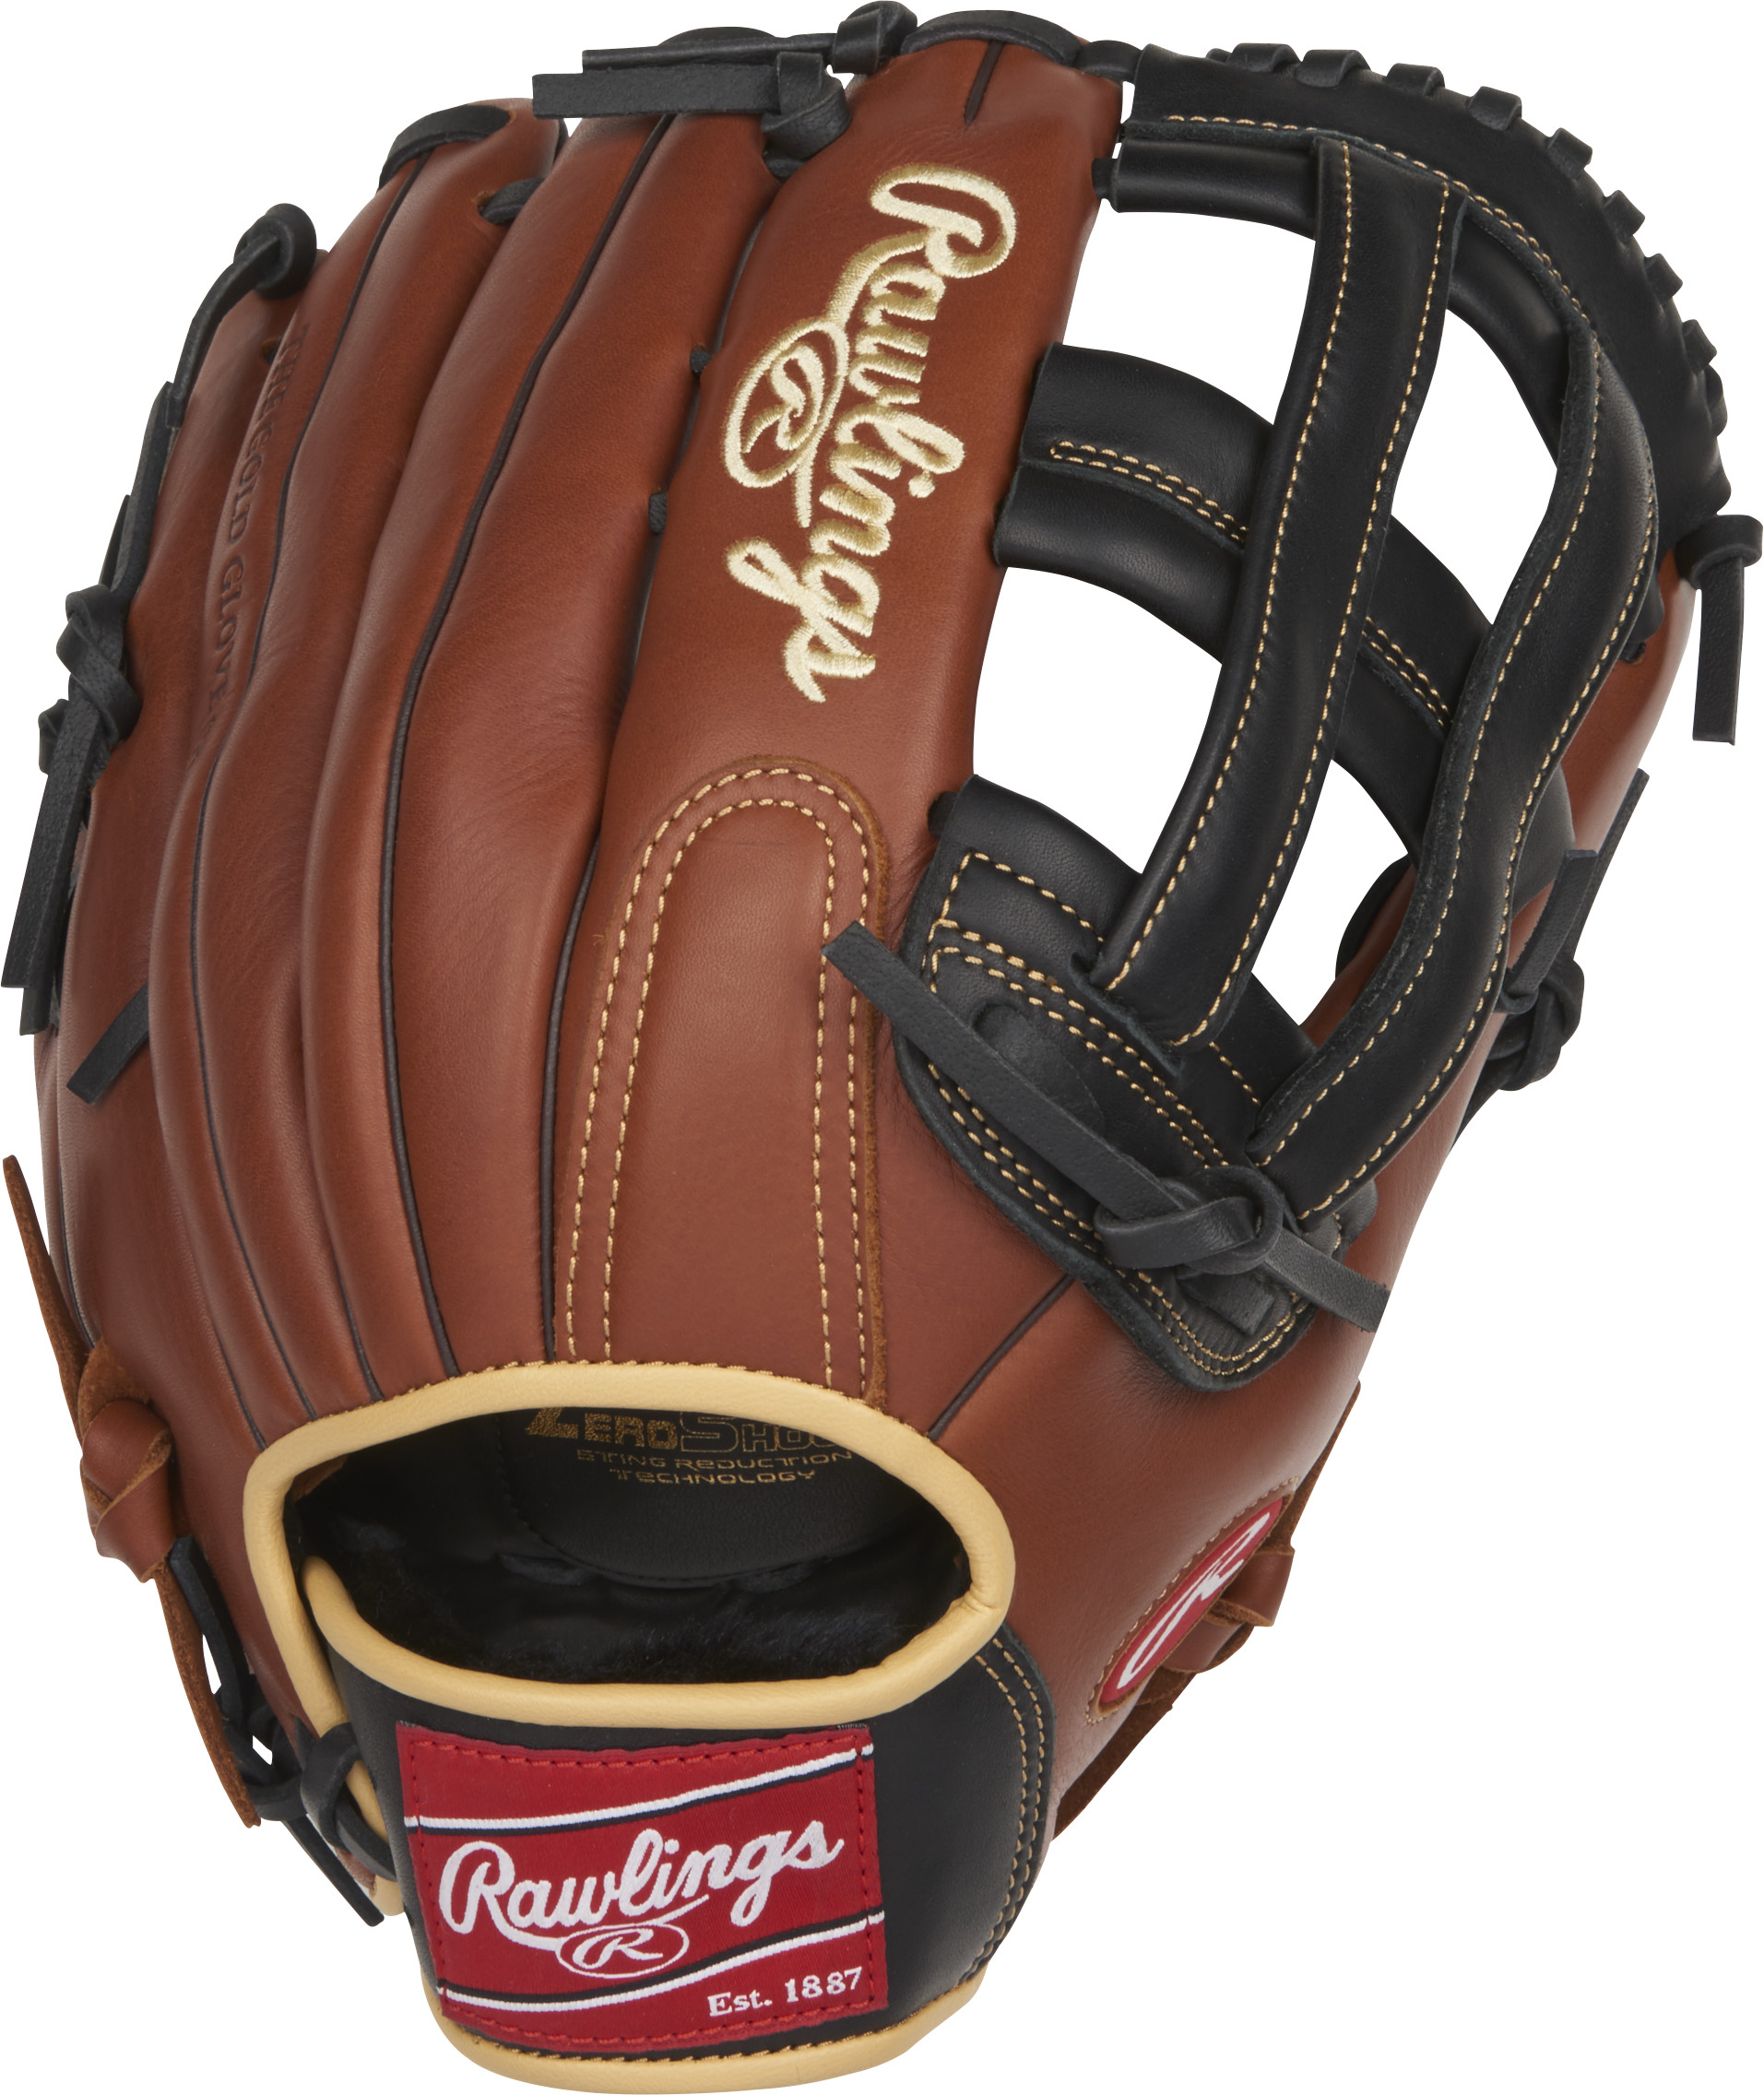 http://www.bestbatdeals.com/images/gloves/rawlings/S1275H-2.jpg